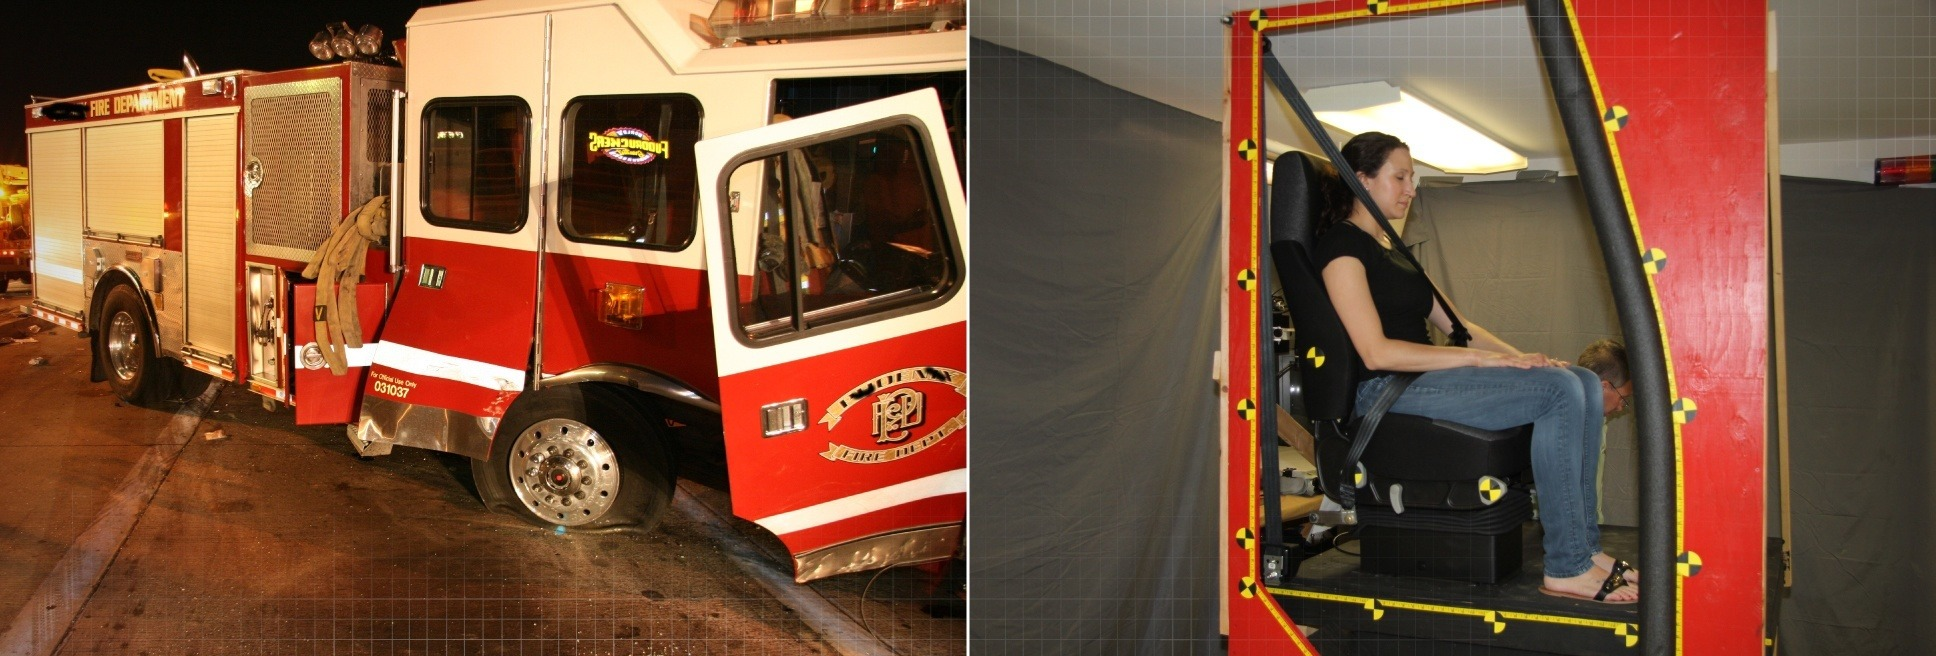 case study fire truck seat belt failure arcca experts and engineers. Black Bedroom Furniture Sets. Home Design Ideas